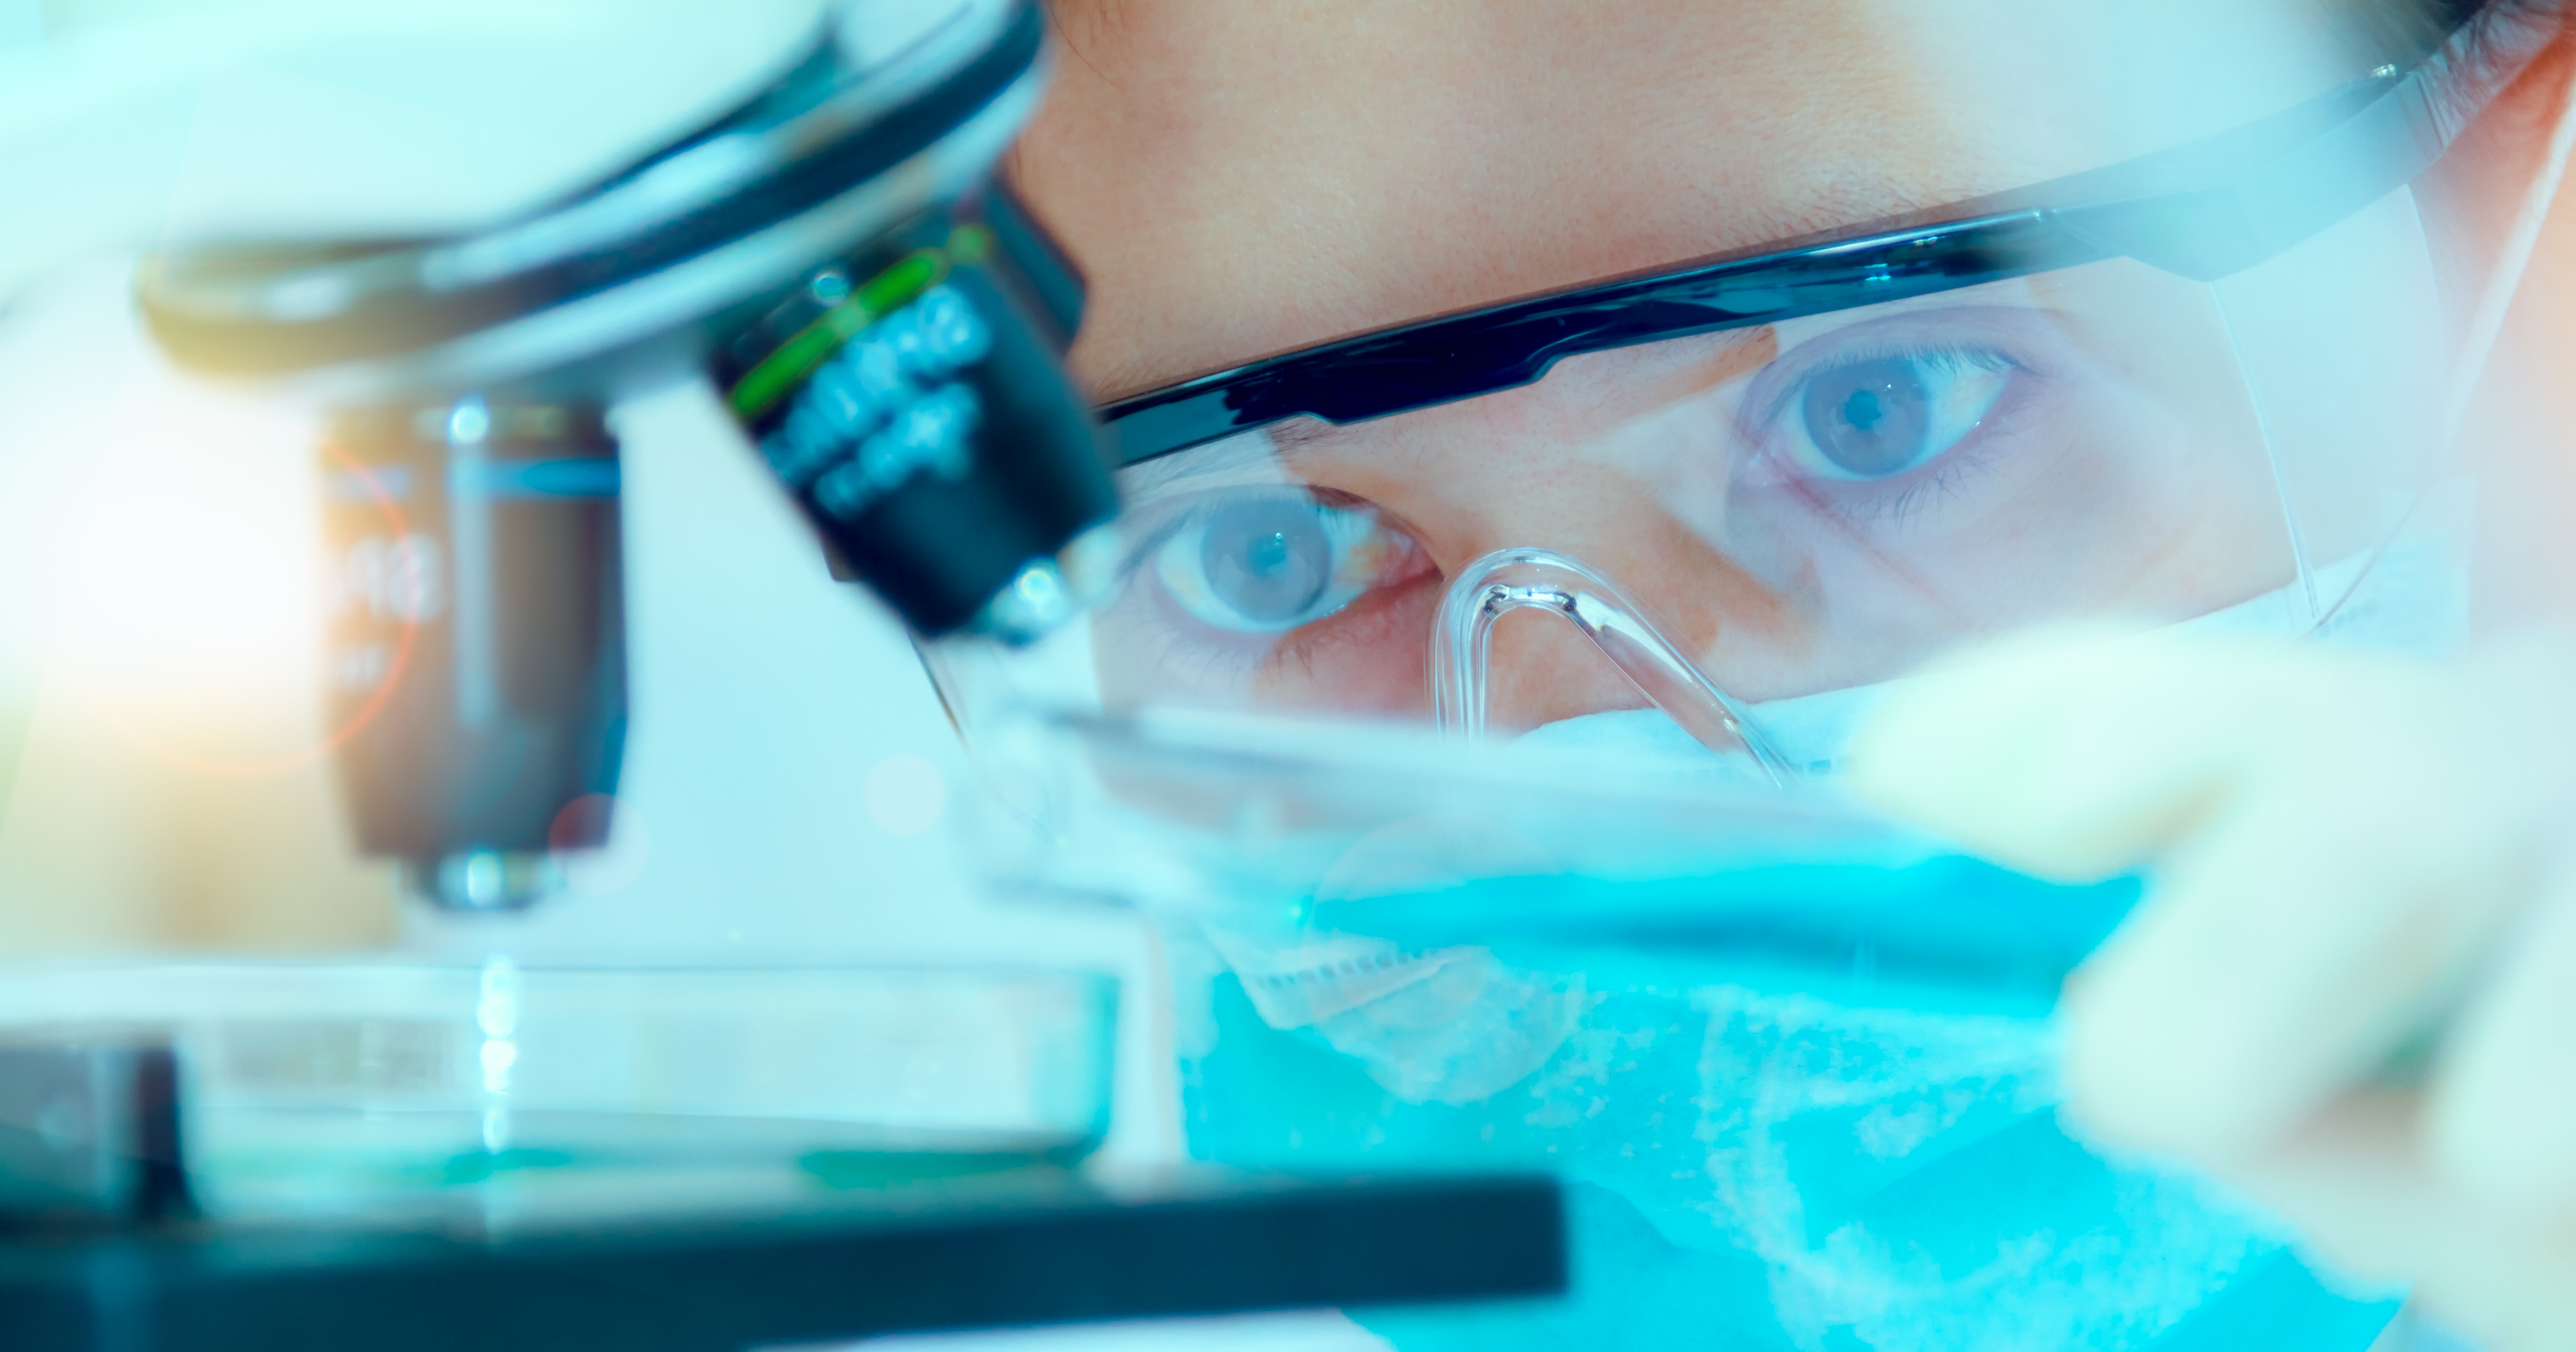 bigstock-Scientist-With-Equipment-And-S-154027766